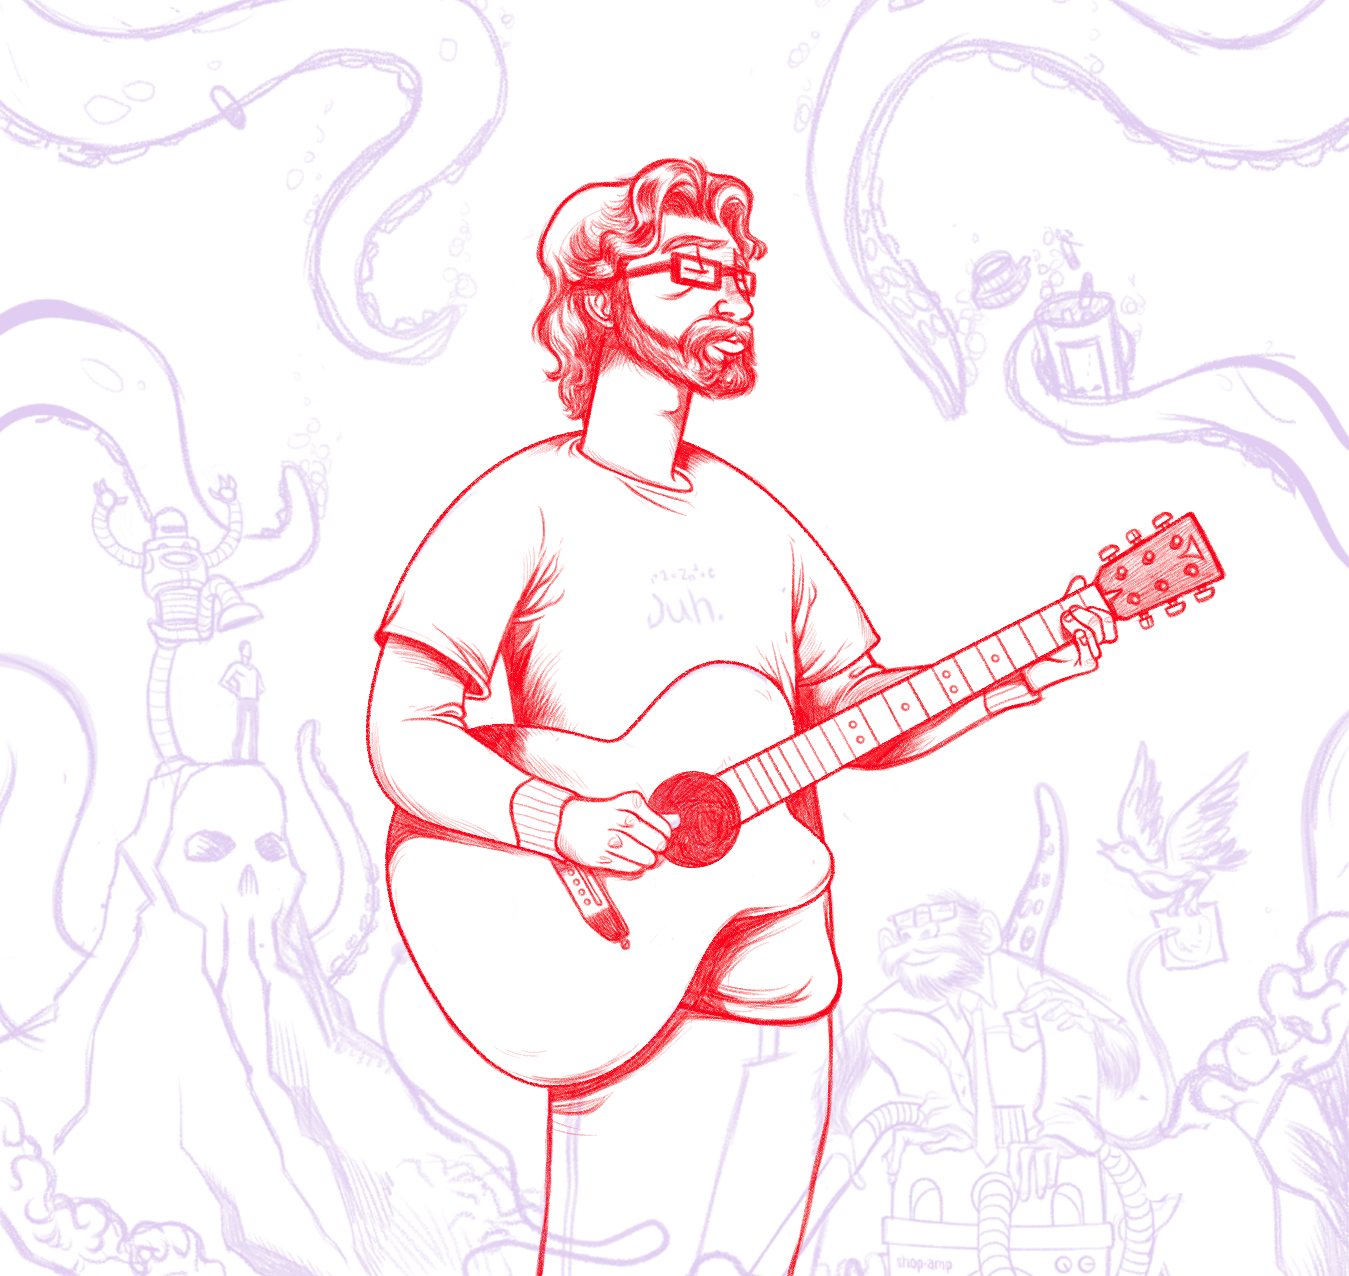 Jonathan Coulton - image 5 - student project